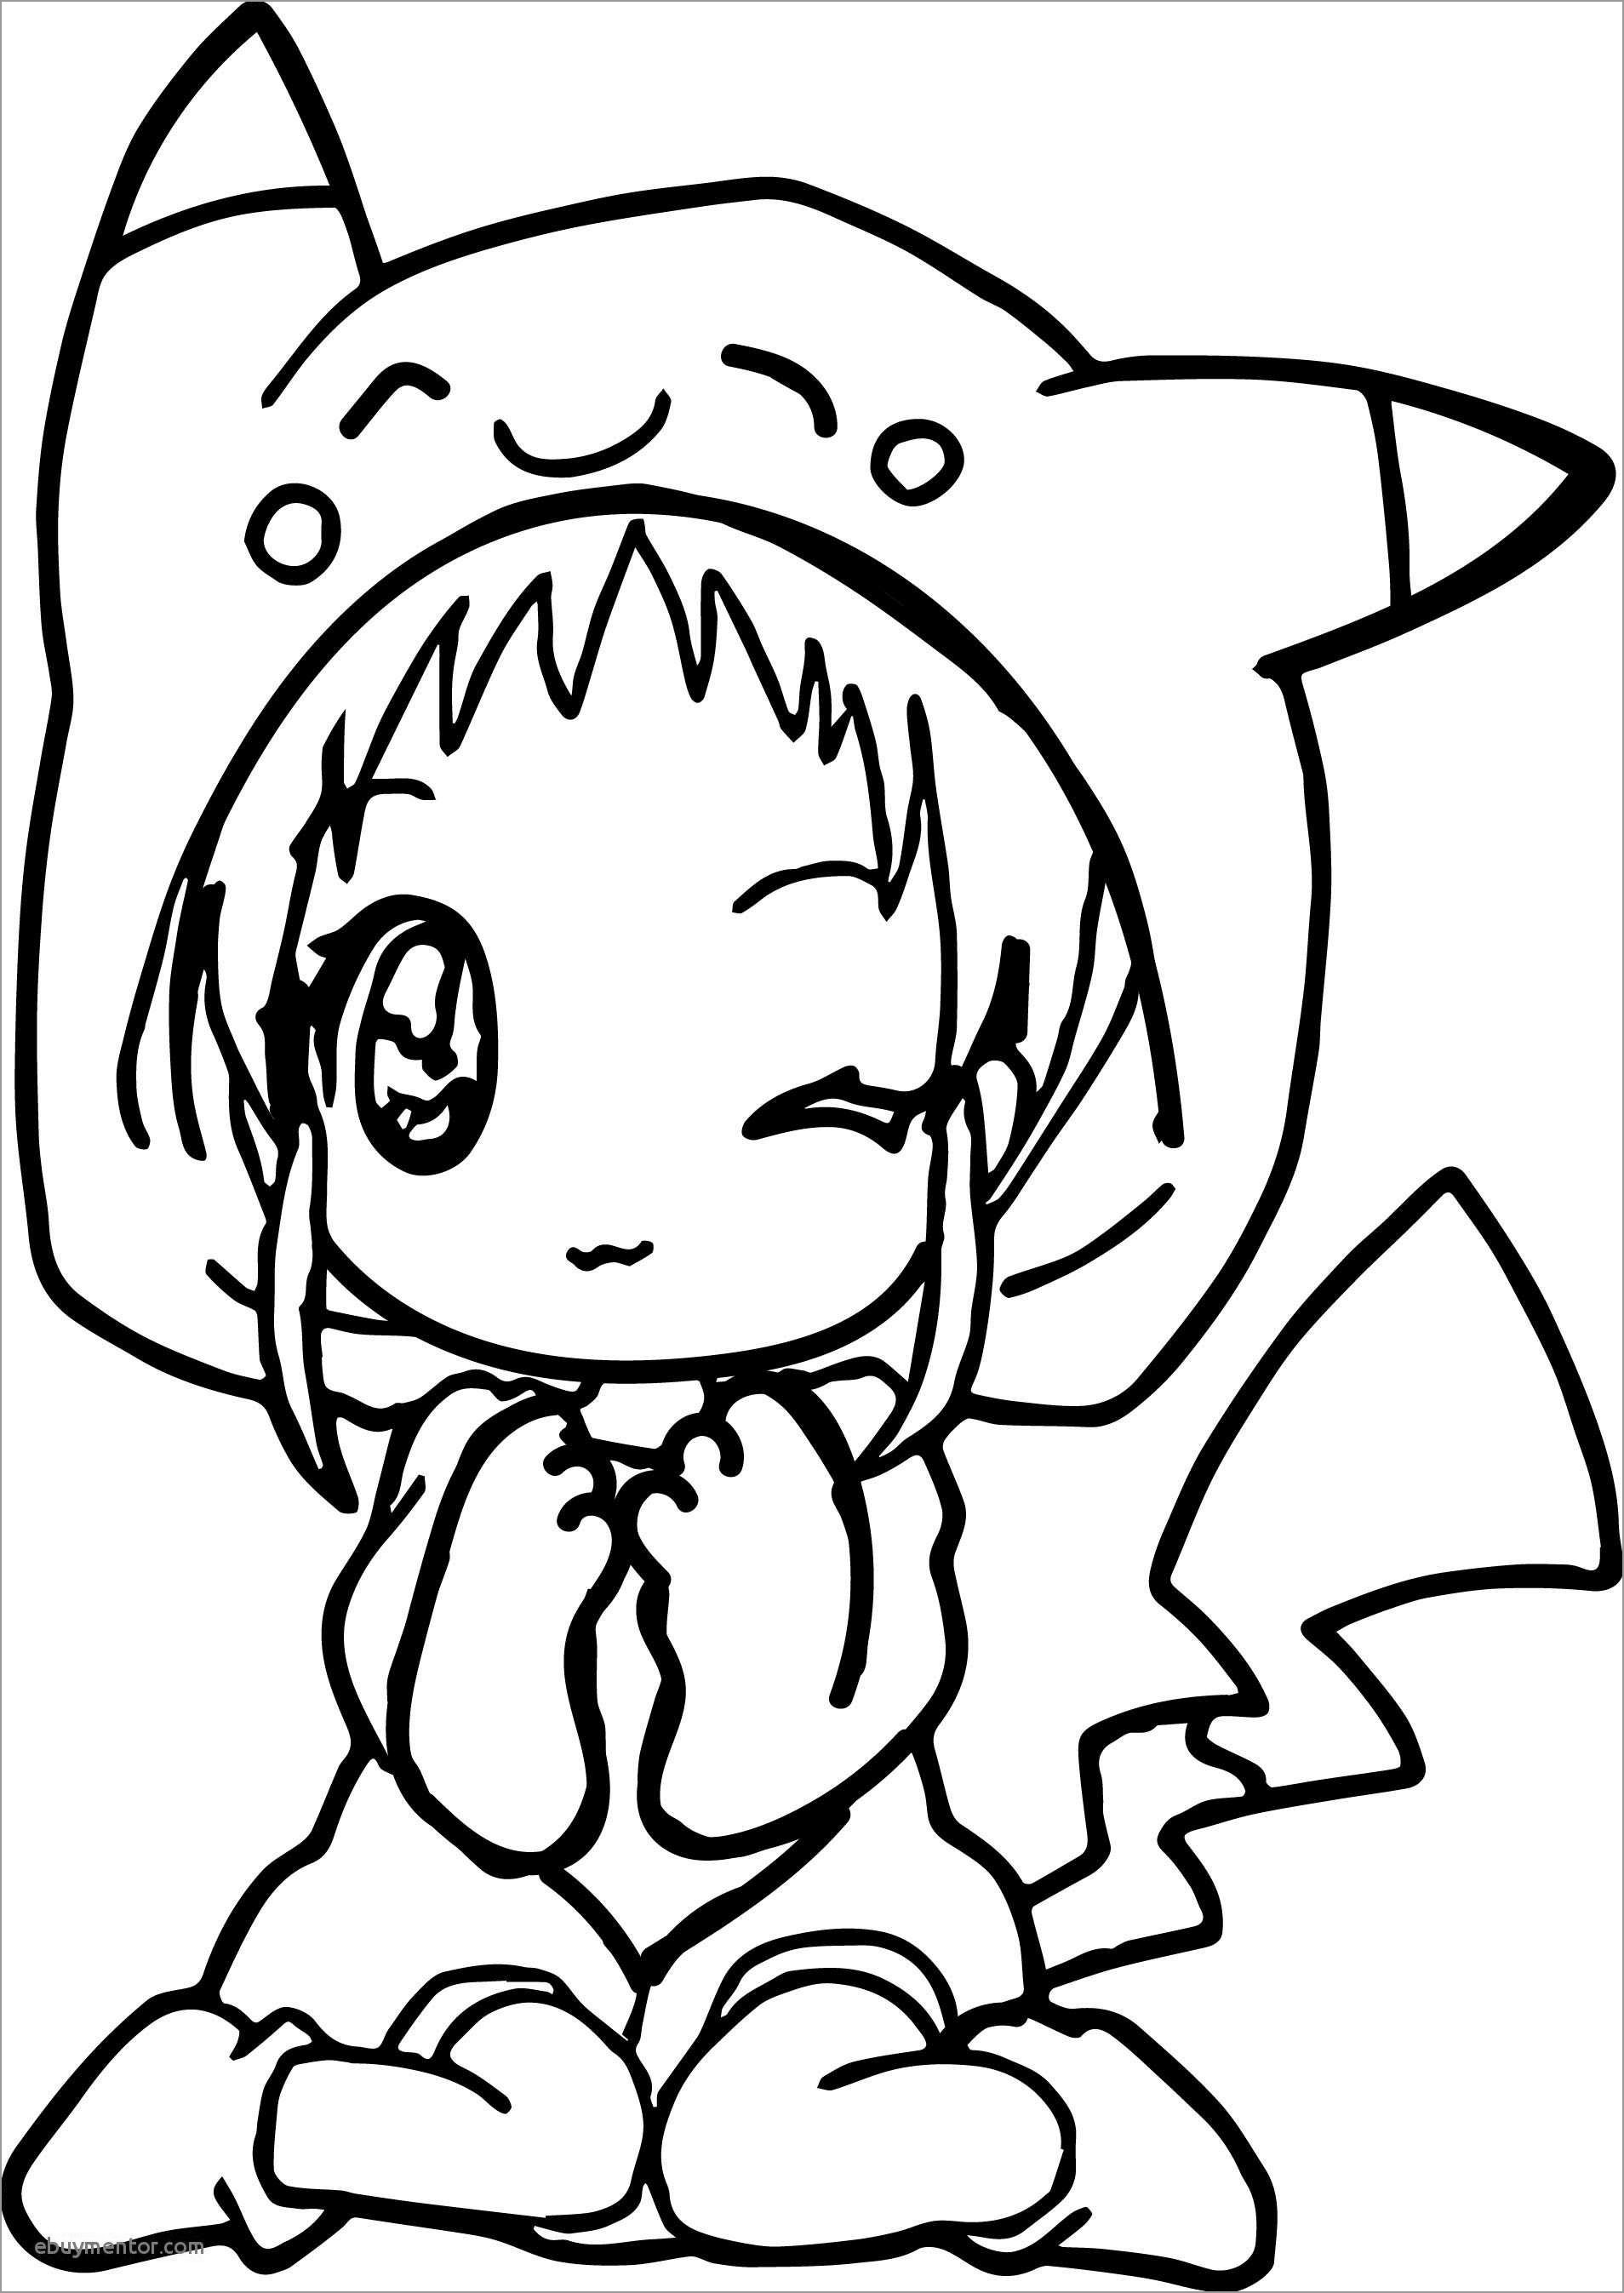 cute chibi girl coloring pages cute chibi girl coloring pages 14 most unbeatable coloring chibi girl cute pages coloring